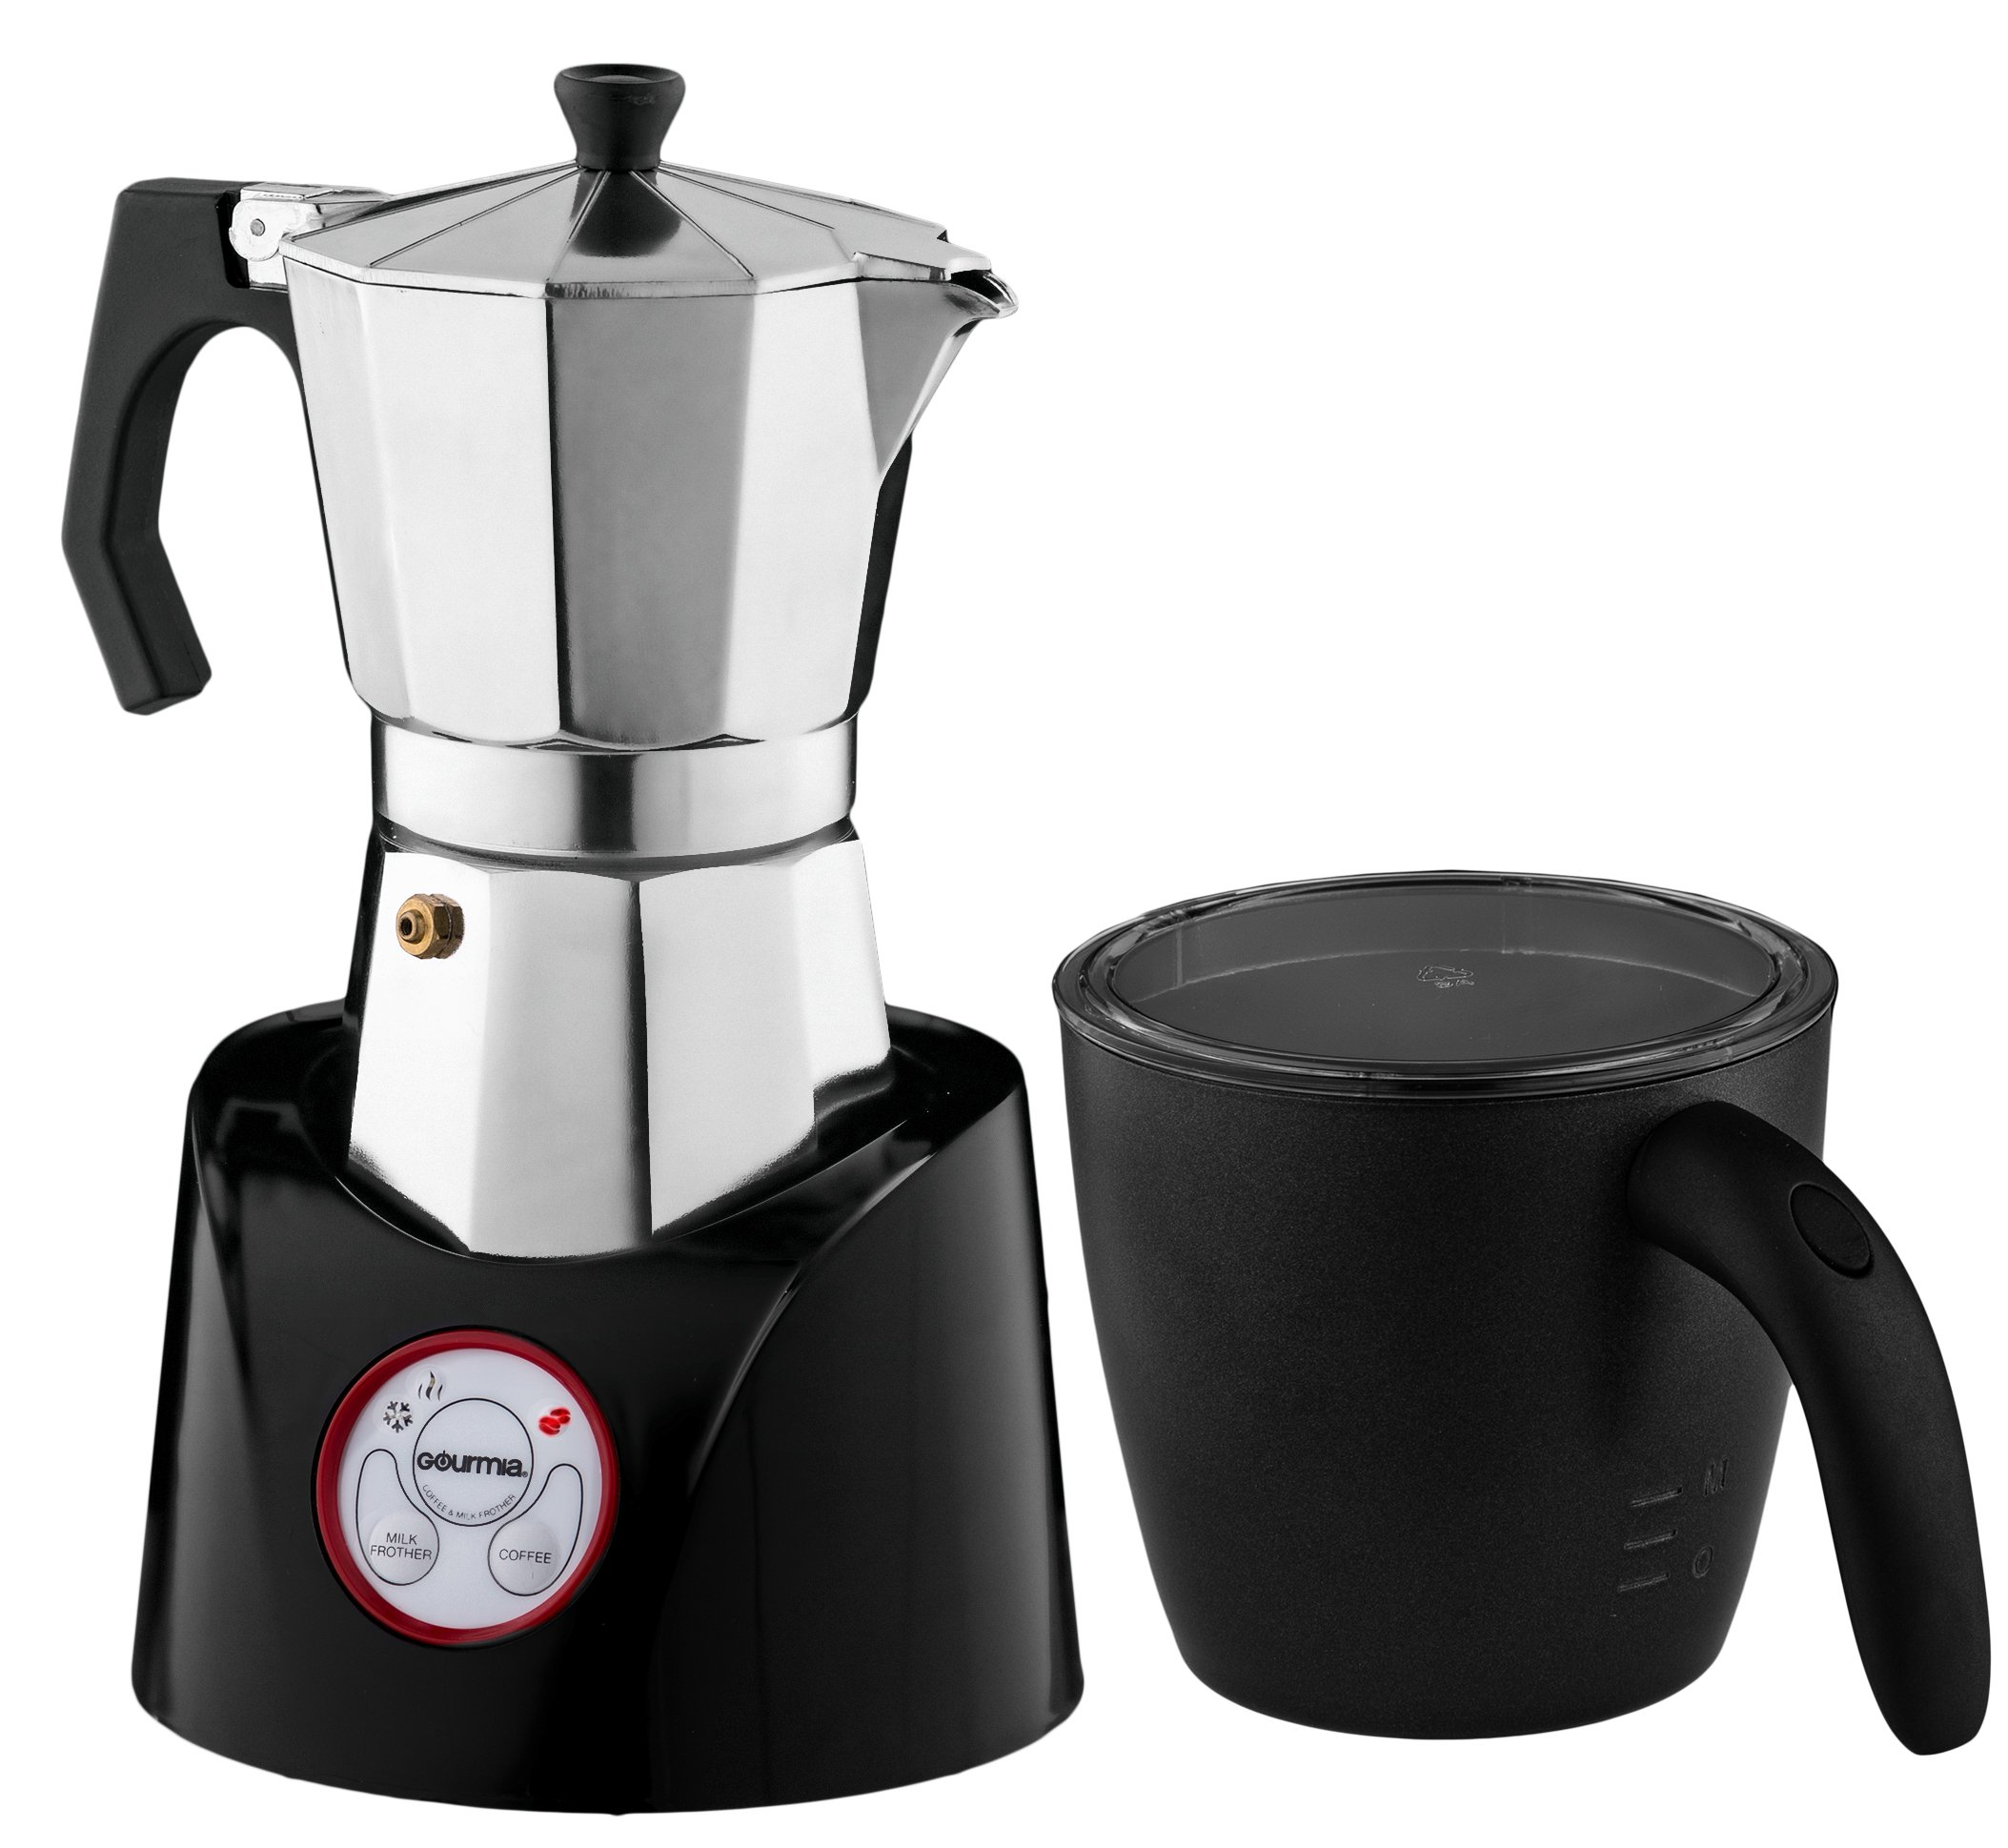 Gourmia GMF255 Espresso Coffee Pot & Milk Frother Combo, 2 in 1 Coffee Station With Interchangeable Base by Gourmia